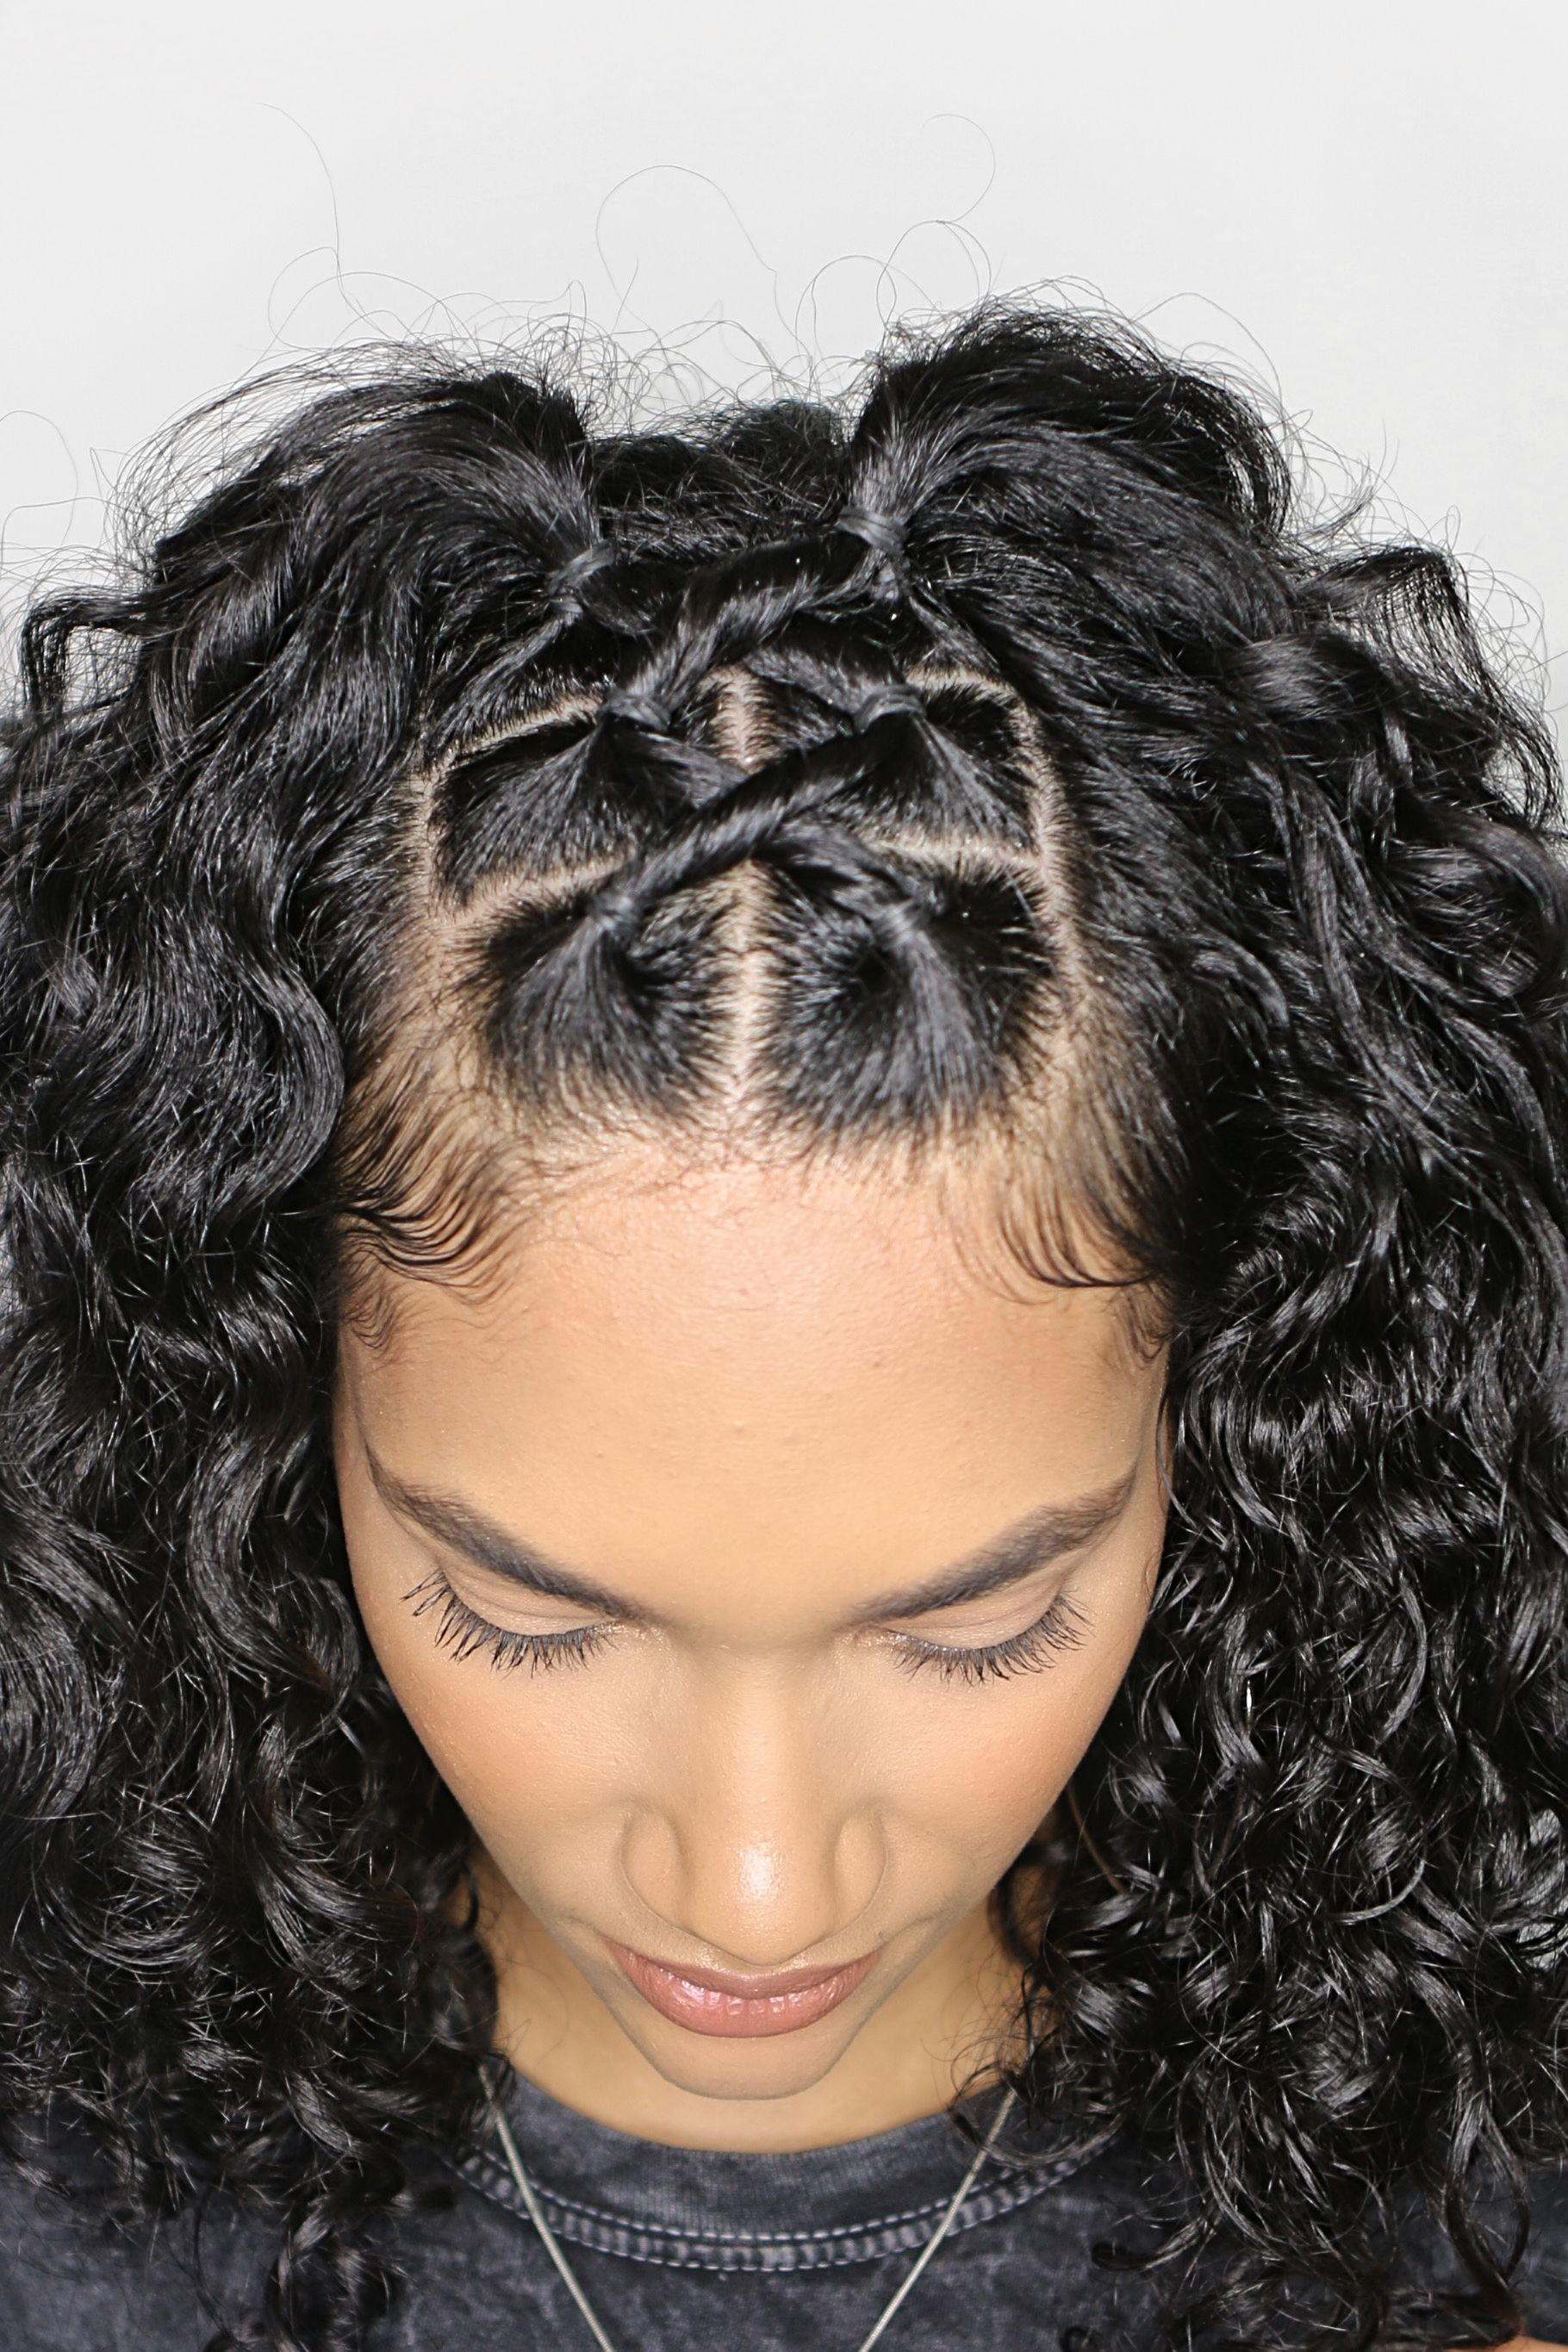 Curly Hairstyle With Rubber Bands Curly Hair Styles Easy Curly Girl Hairstyles Curly Hair Styles Naturally